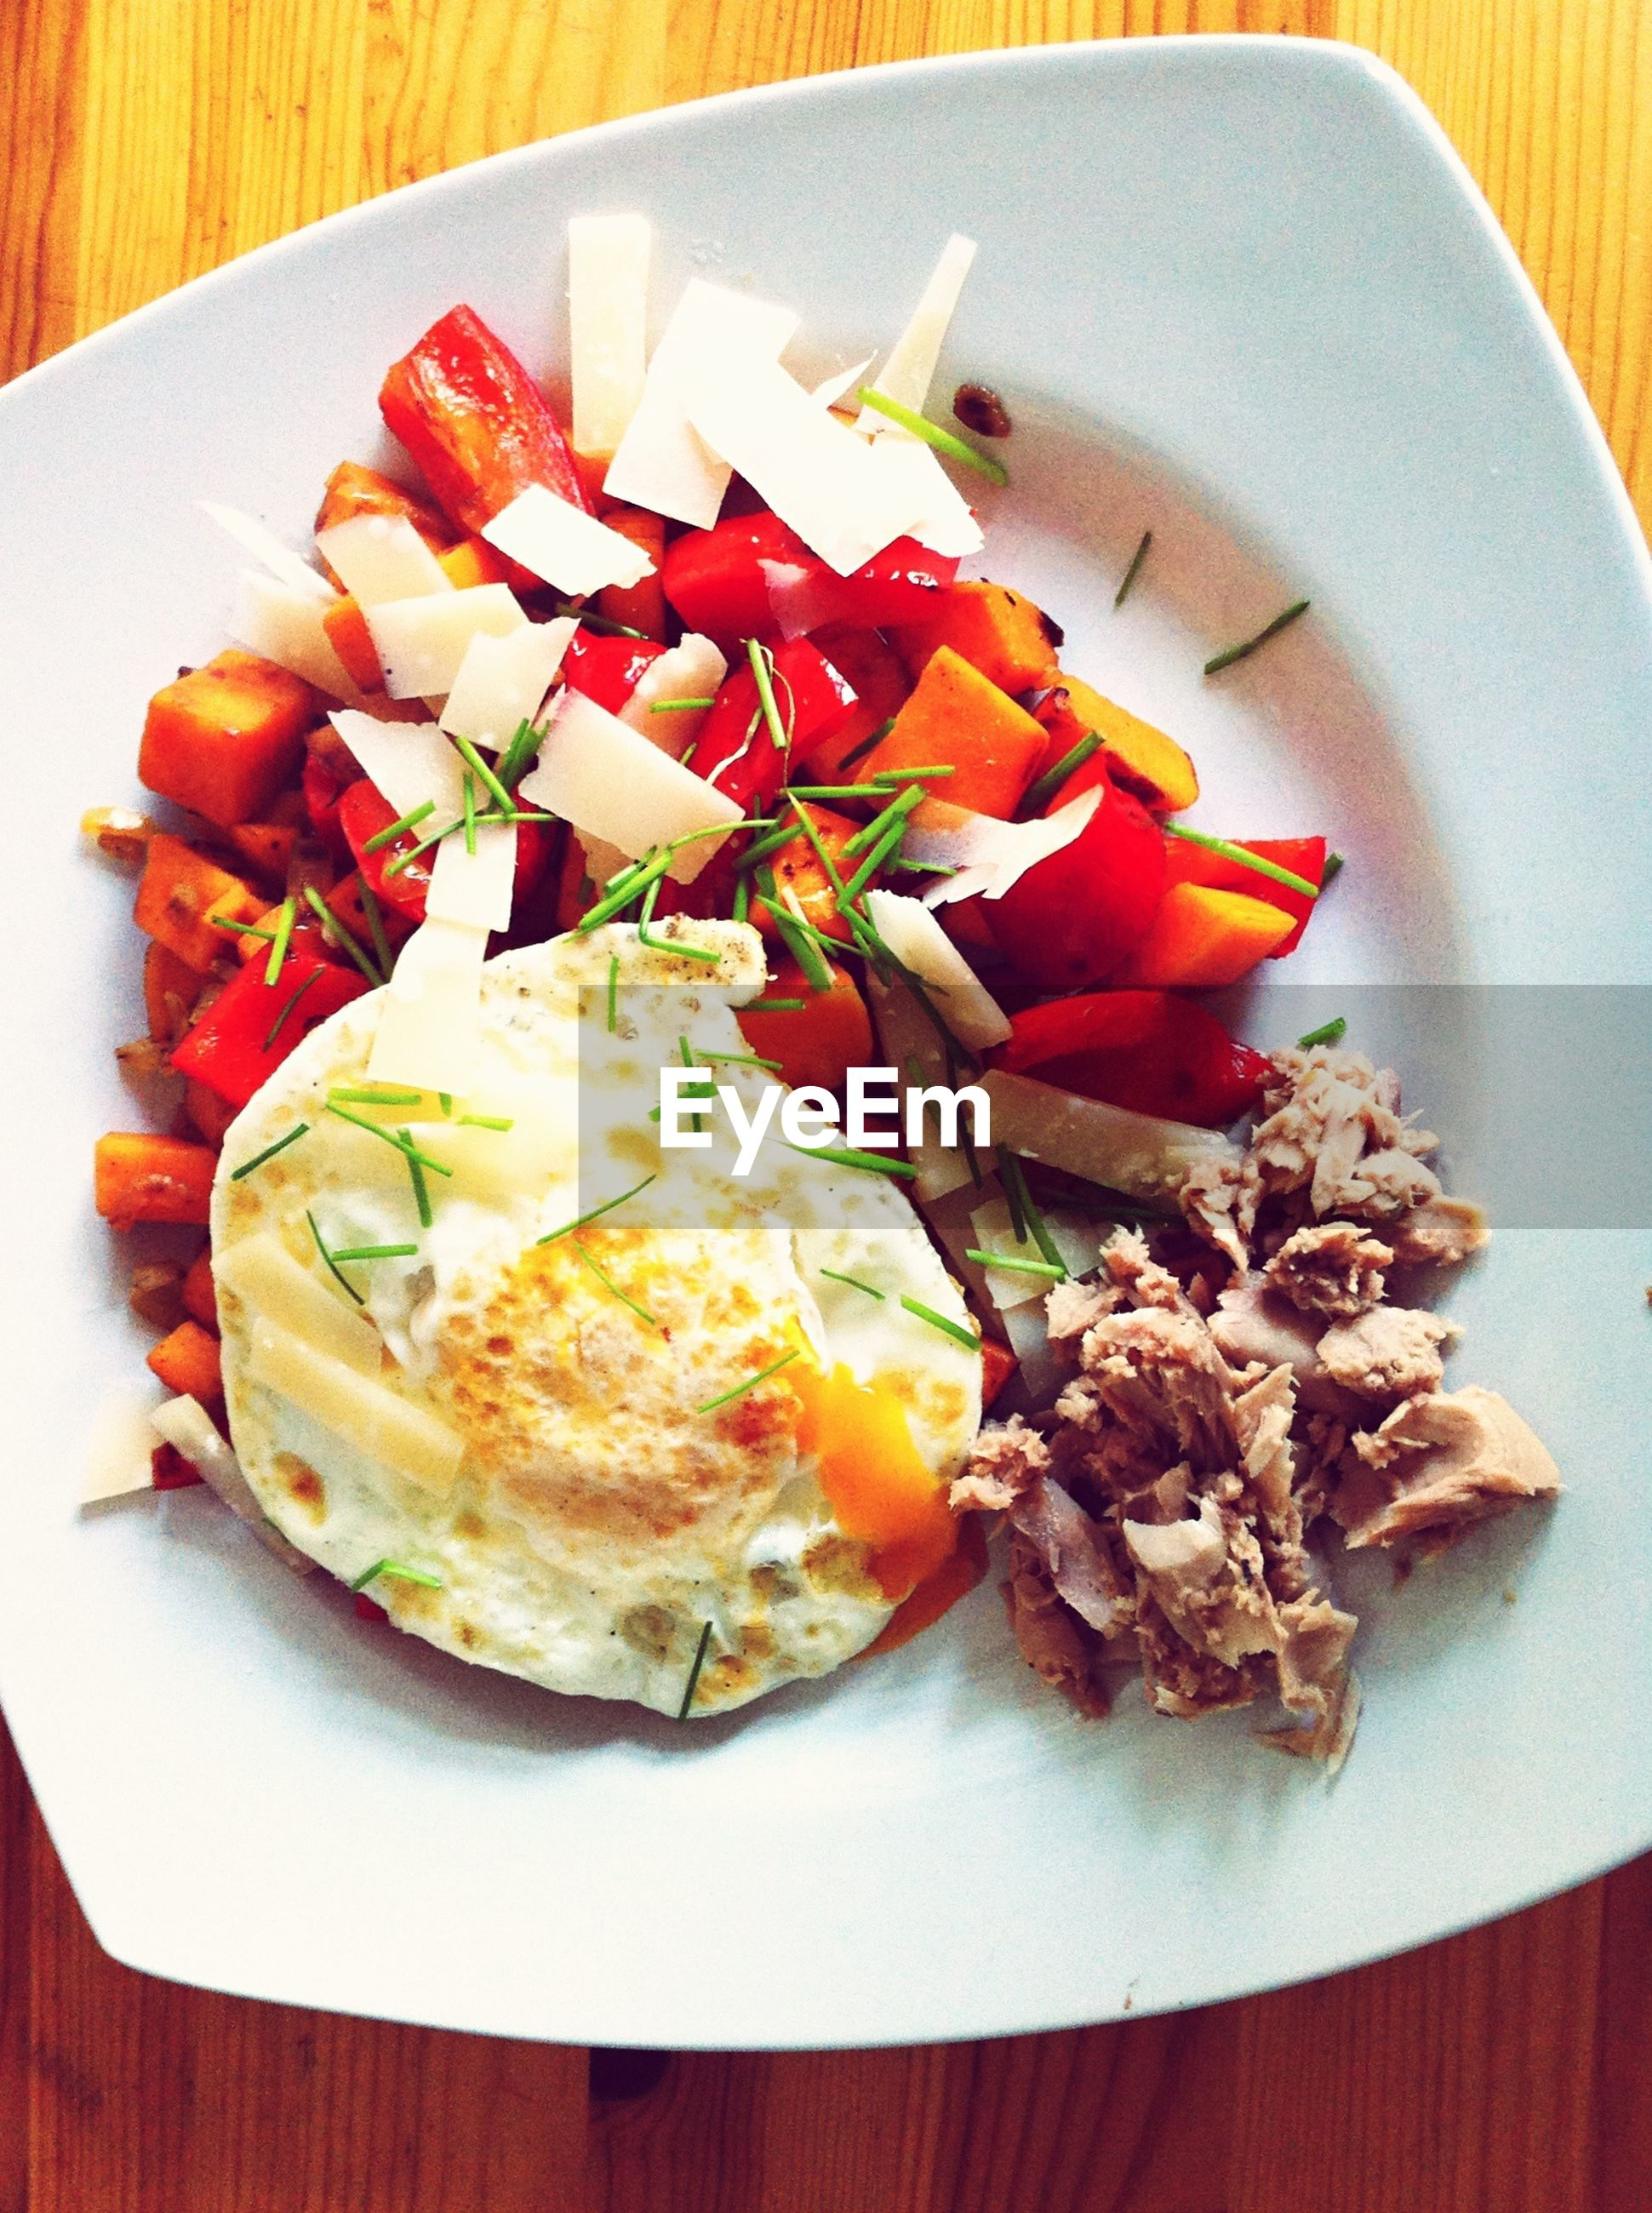 Fried egg with vegetables on plate